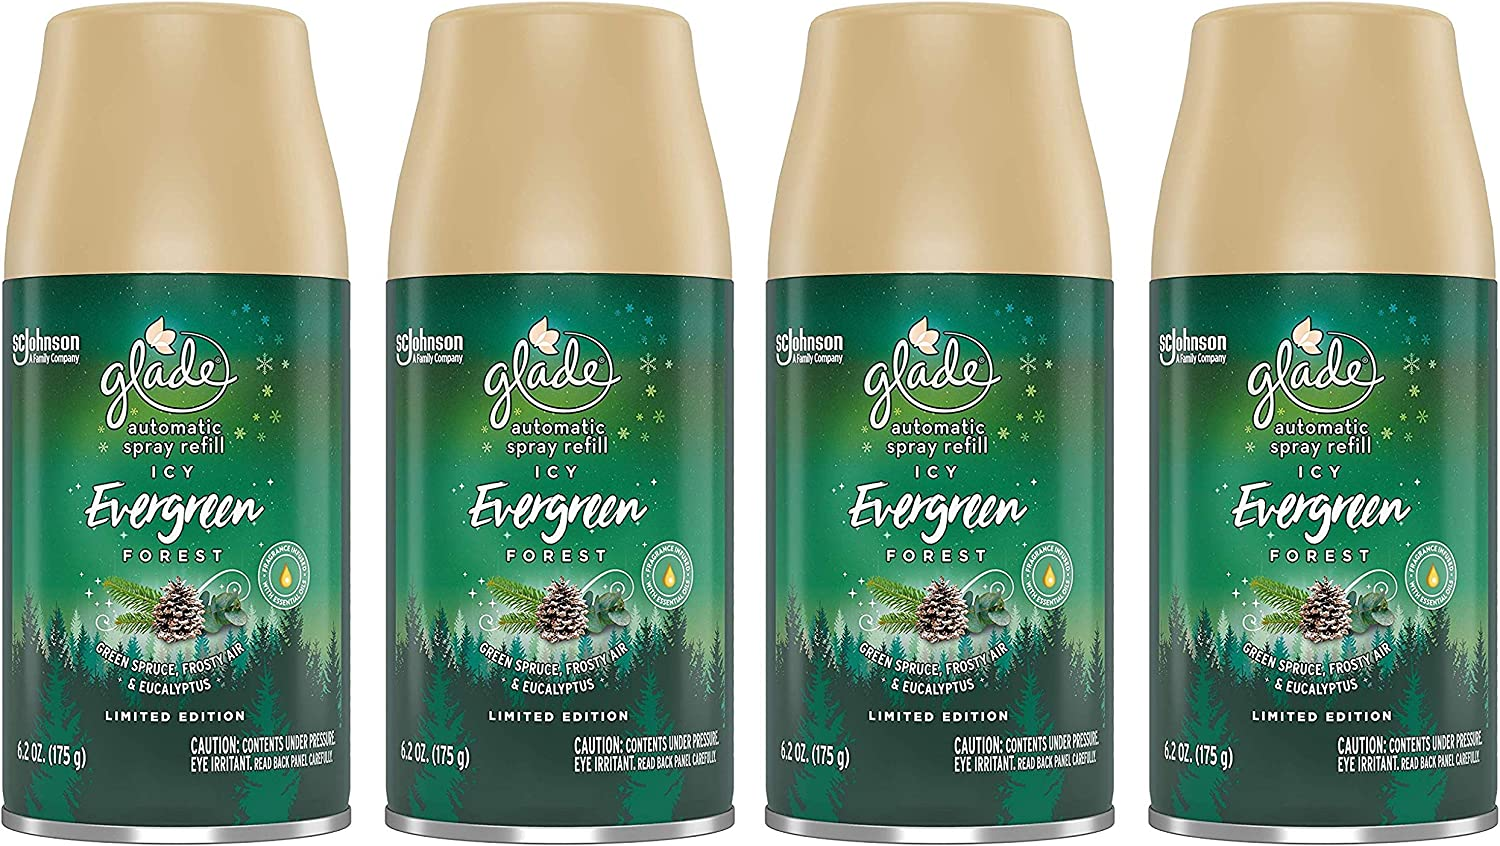 Glade Automatic Spray Refill - Limited Edition Holiday Collection - ICY Evergreen Forest - Net Wt. 6.2 OZ (175 g) Per Refill Can - Pack of 4 Refill Cans